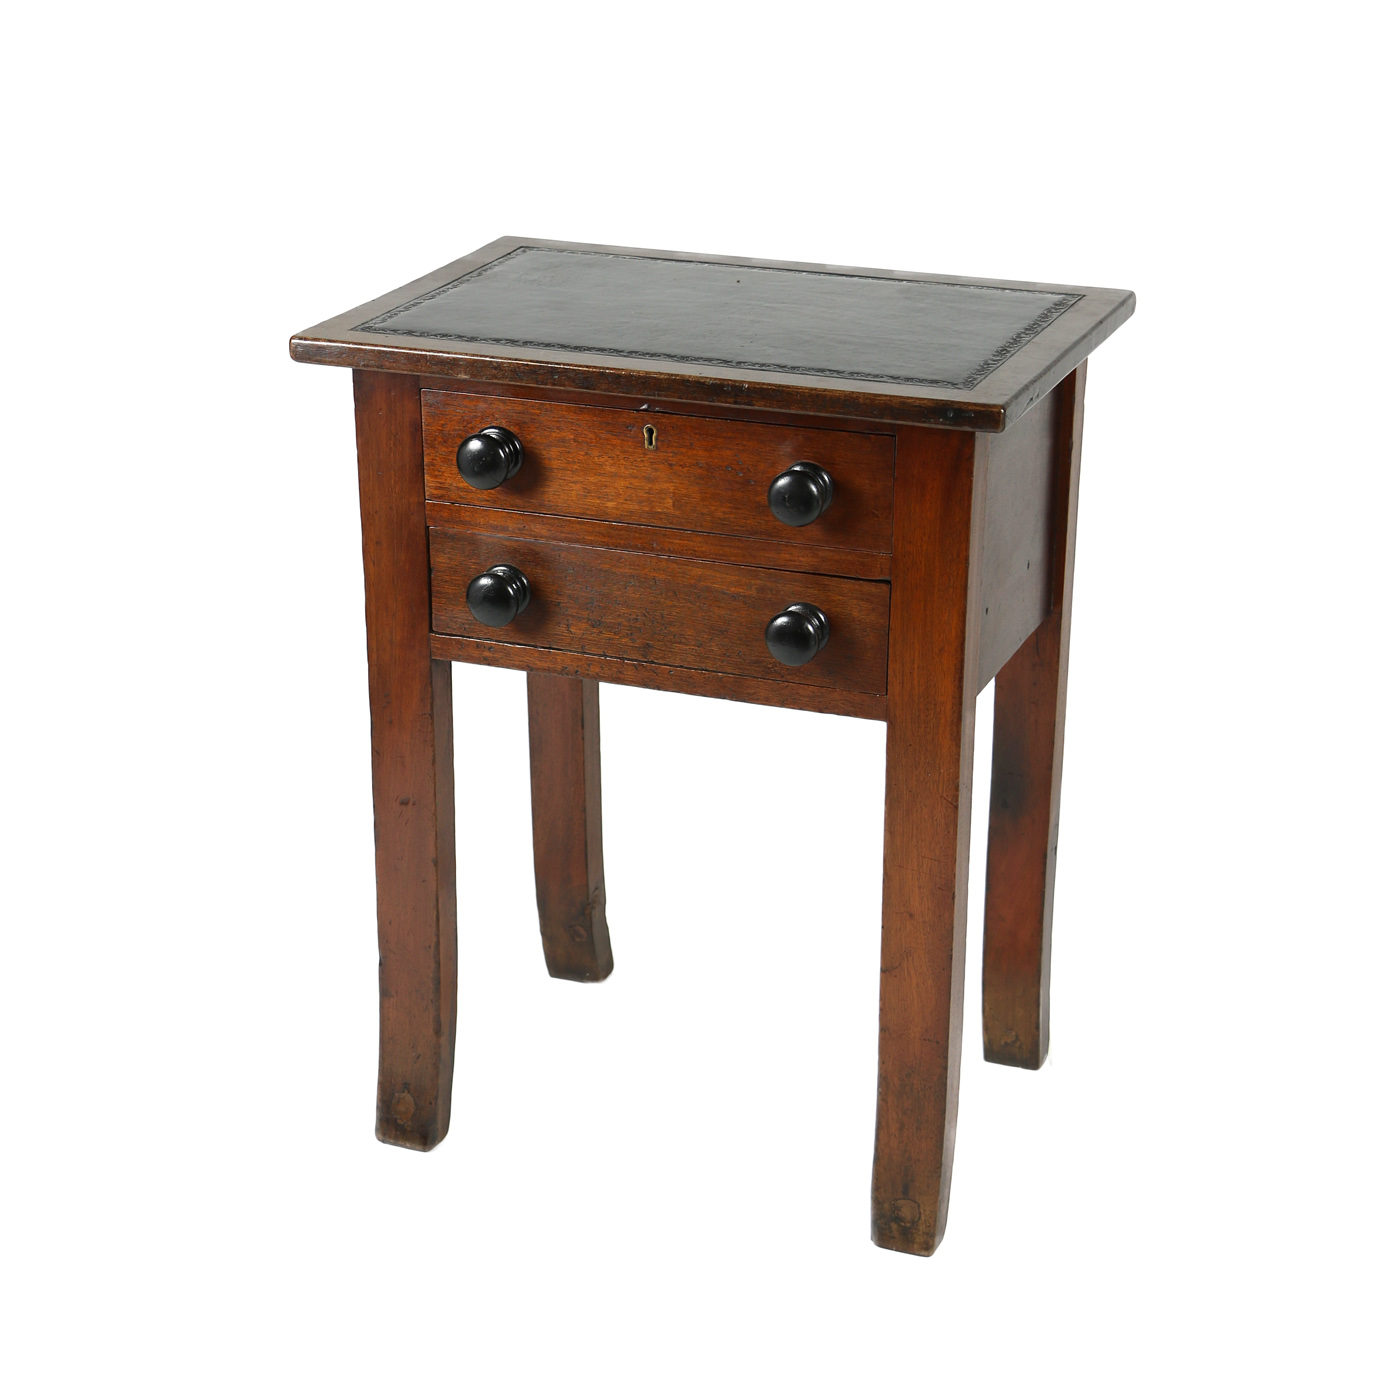 An English Oak Side Table with Two Drawers and Later Black Black